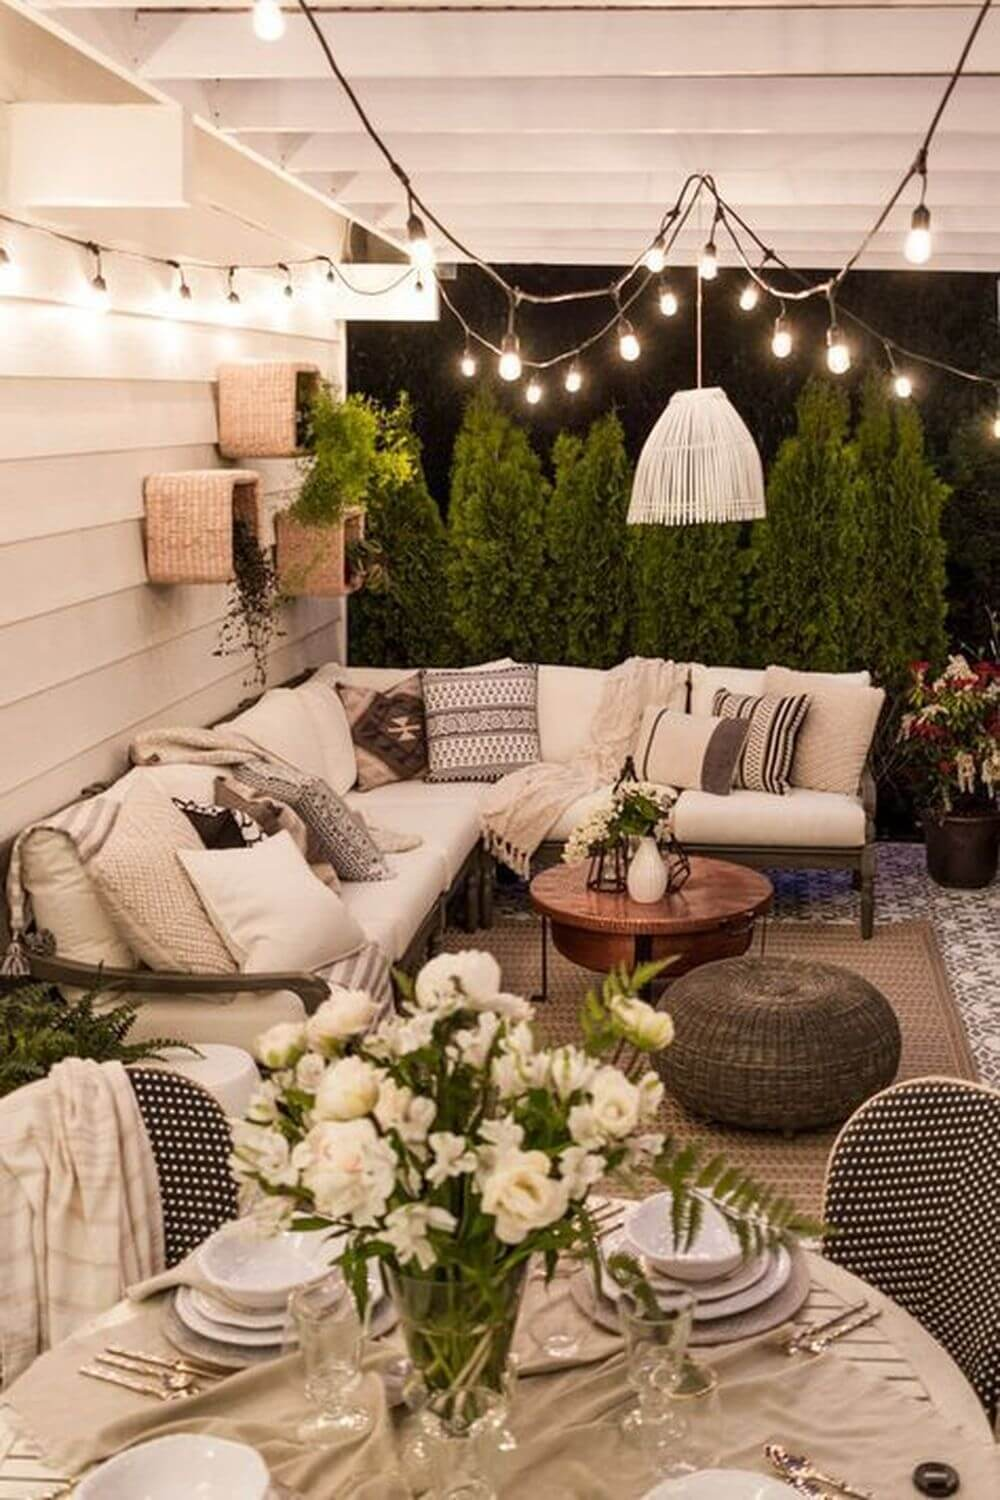 33 Best Outdoor Living Space Ideas and Designs for 2020 on Premium Outdoor Living id=91335